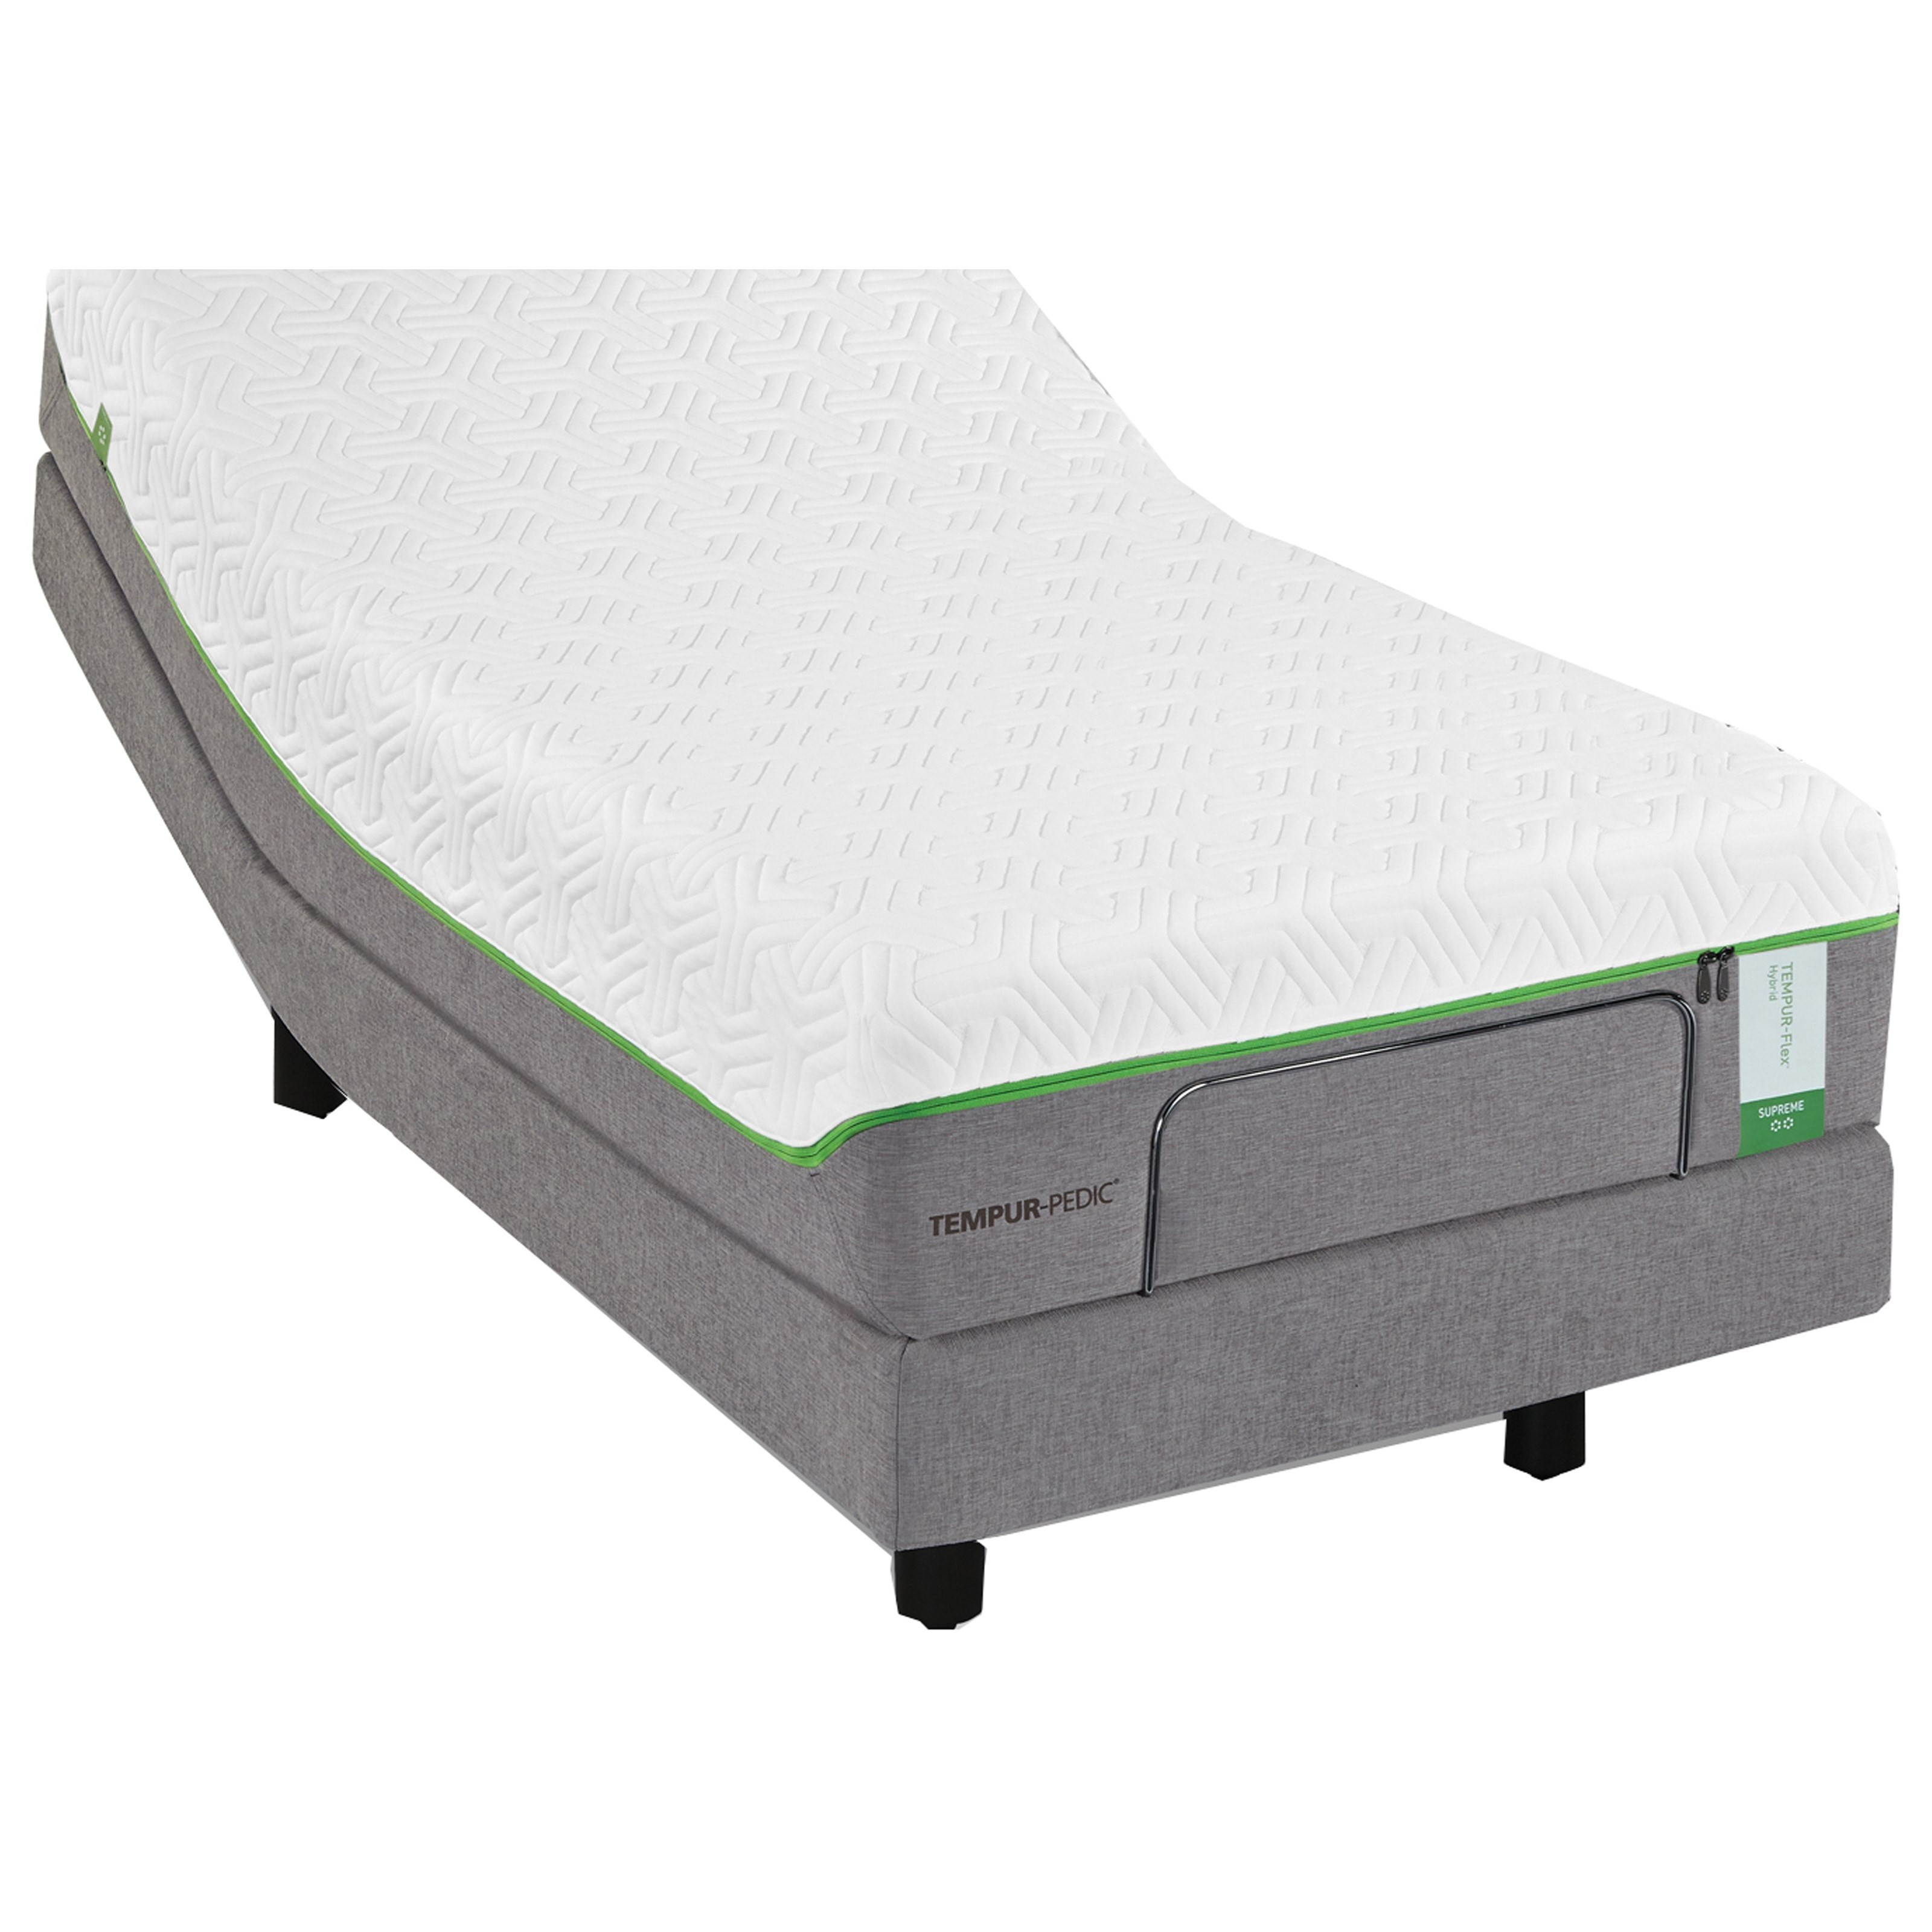 Tempur-Pedic® TEMPUR-Flex Elite Queen Medium Soft Plush Mattress Set - Item Number: 10117150+25565250